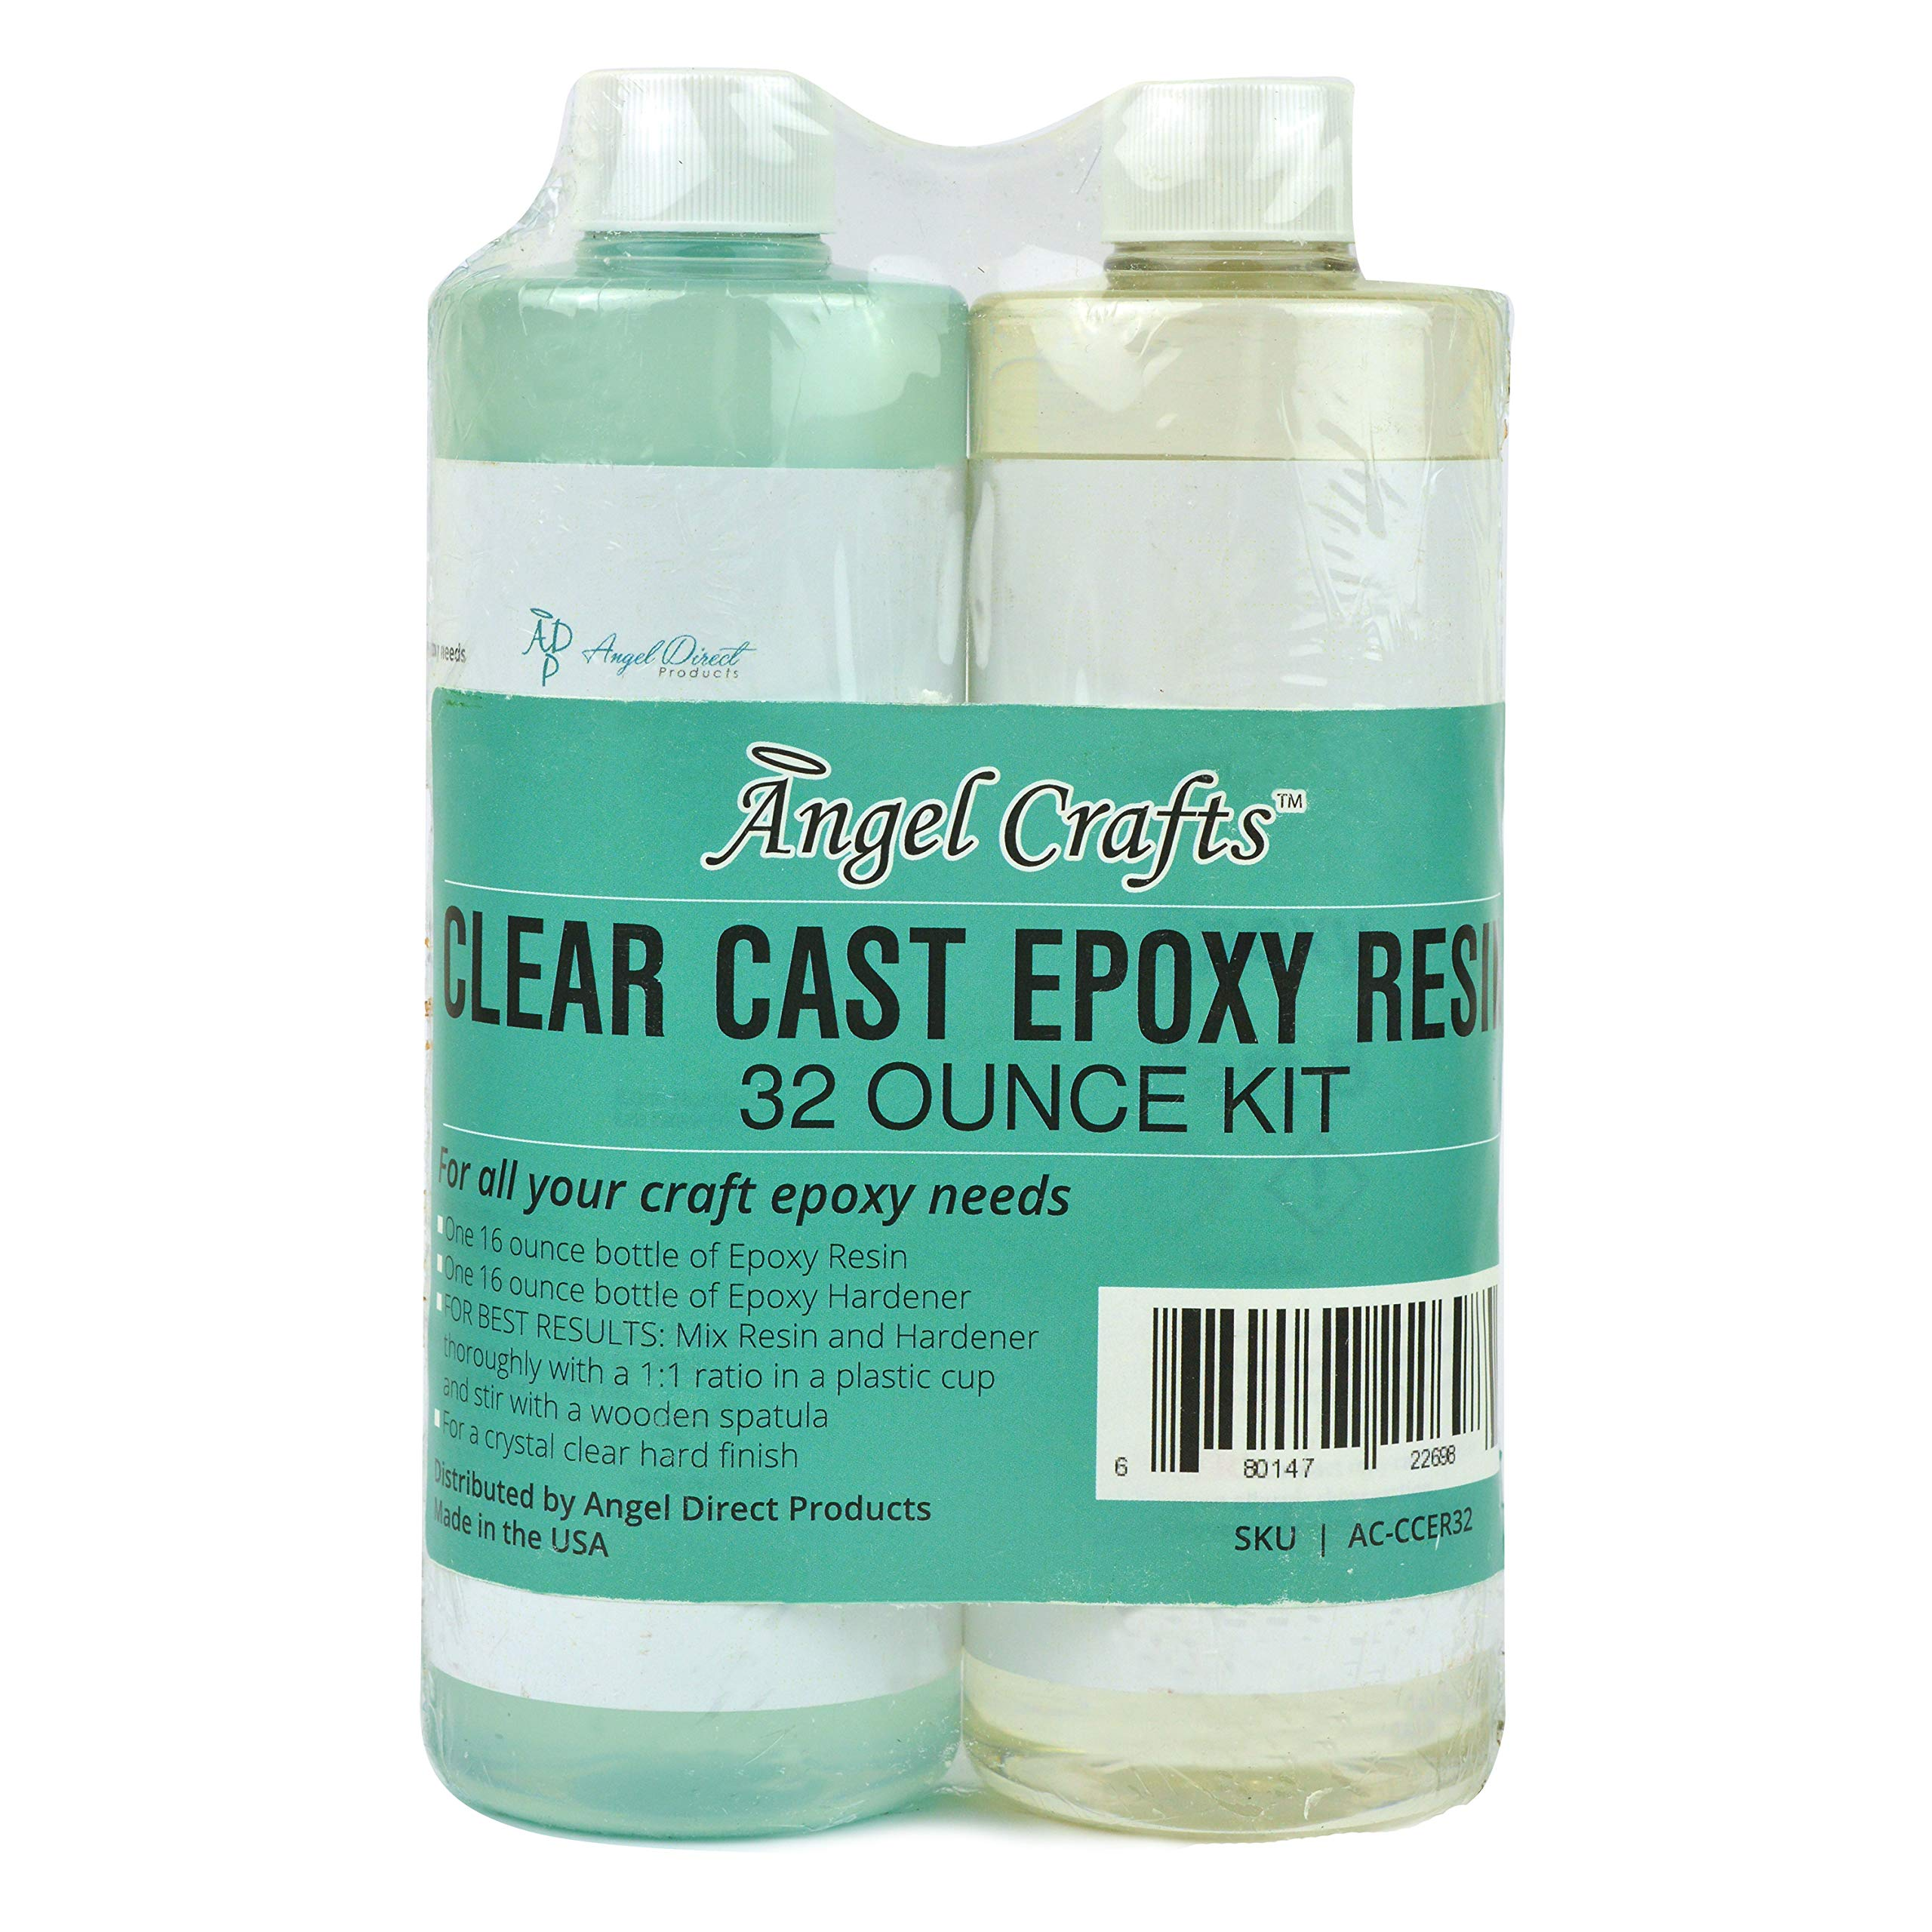 Angel Crafts Clear Casting Epoxy Resin and Hardener Mix Kit: Clear Resin for Craft Art, Jewelry, Wood Table Tops, Molds, Dyes, Color Pigments, Buttons, UV Protection Cast Coating Formula, 32 Ounces by Angel Crafts